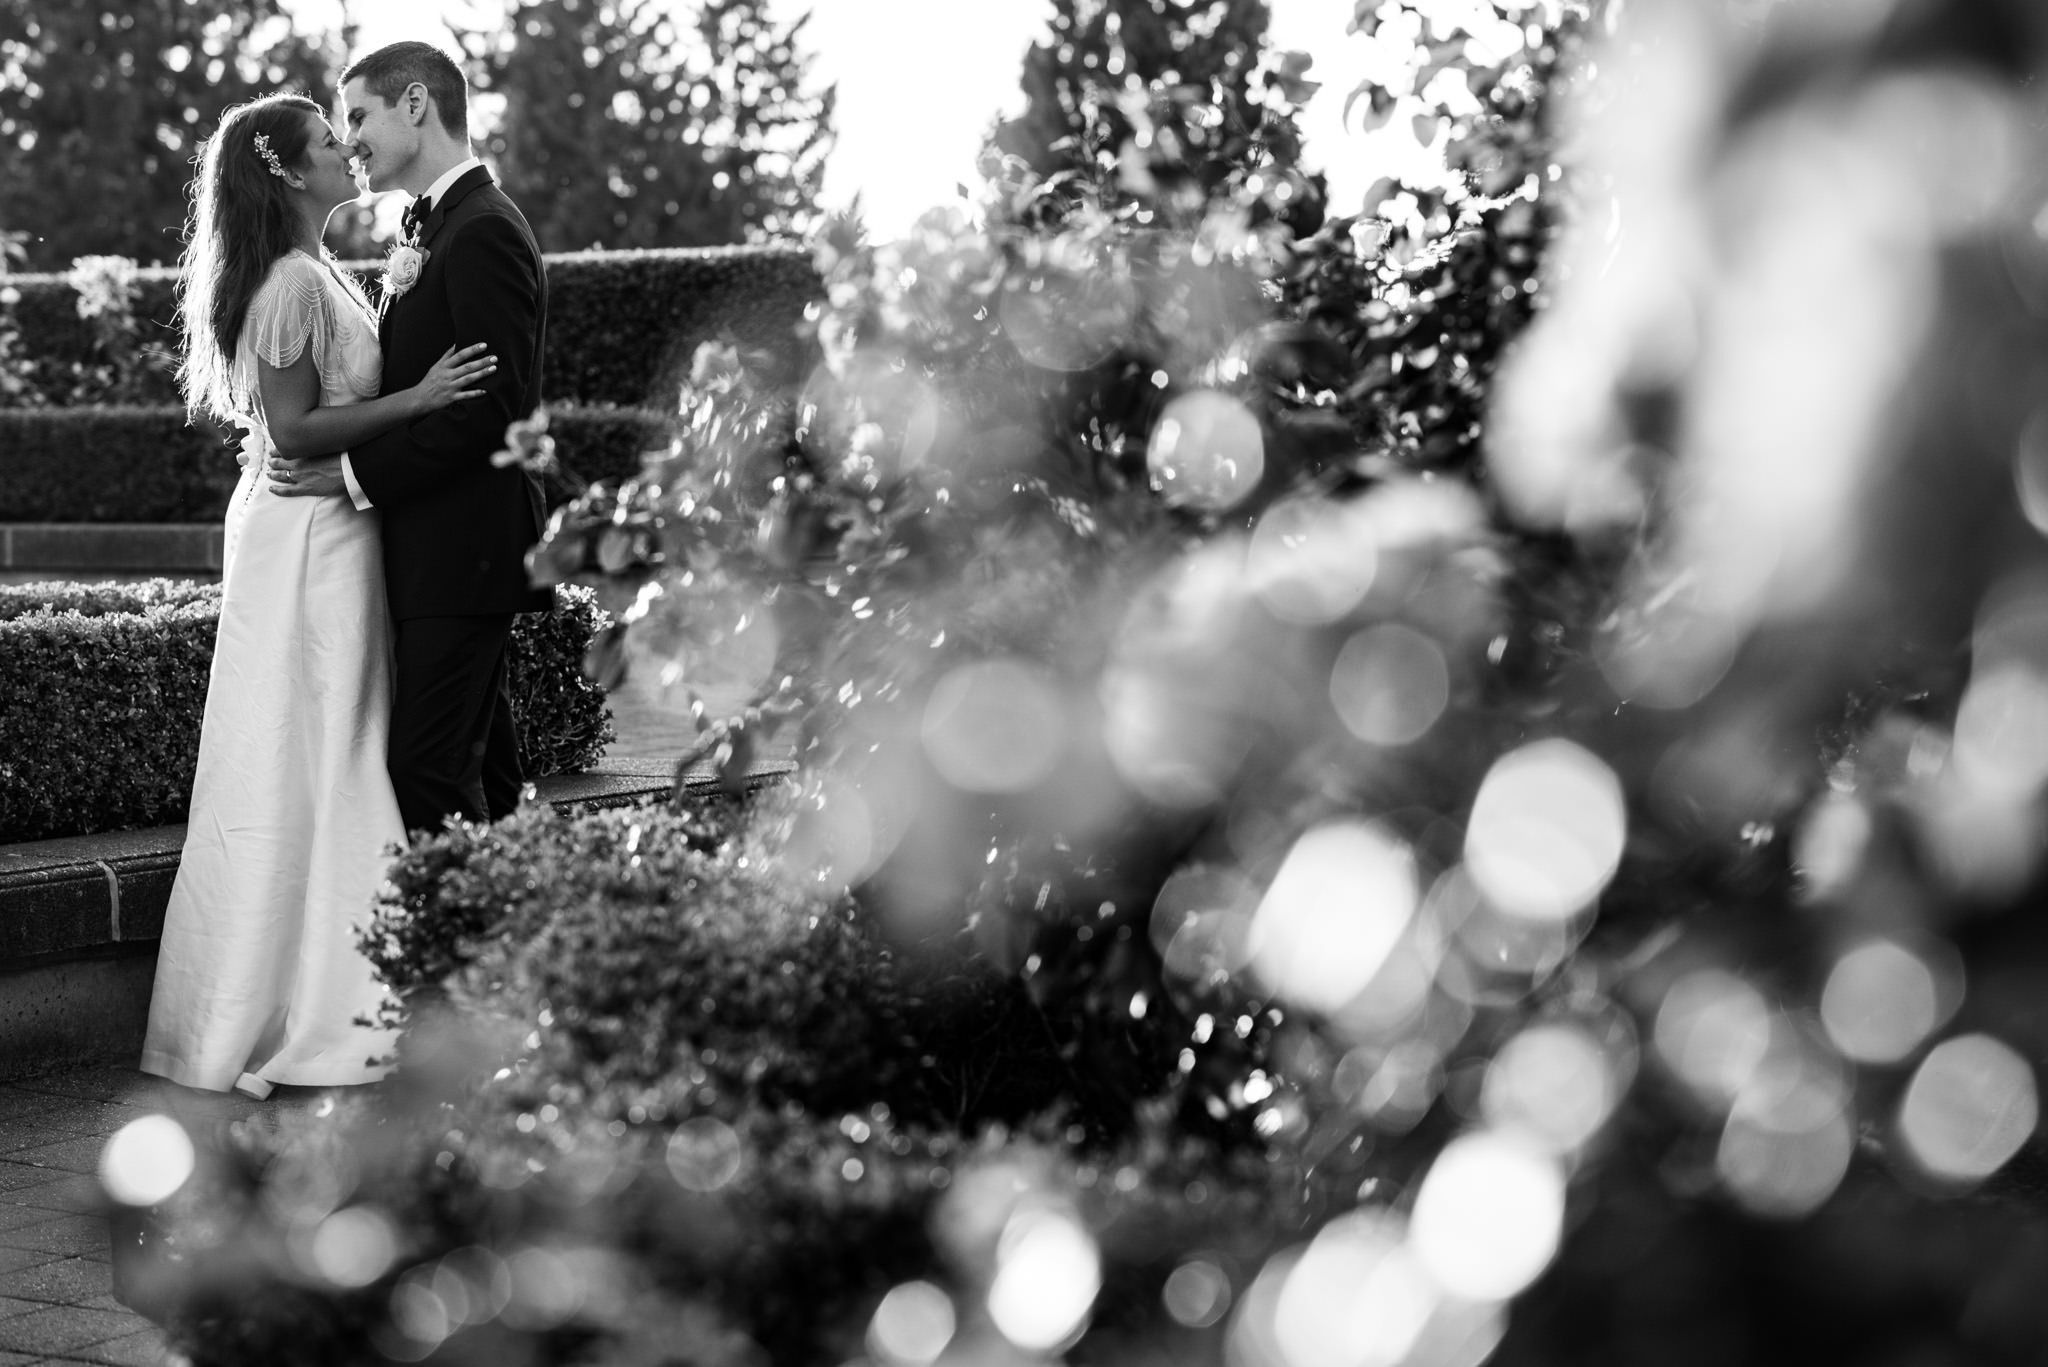 ubc-rose-garden-wedding-sage-bistro-wedding-bc-wedding-photographer-43.jpg